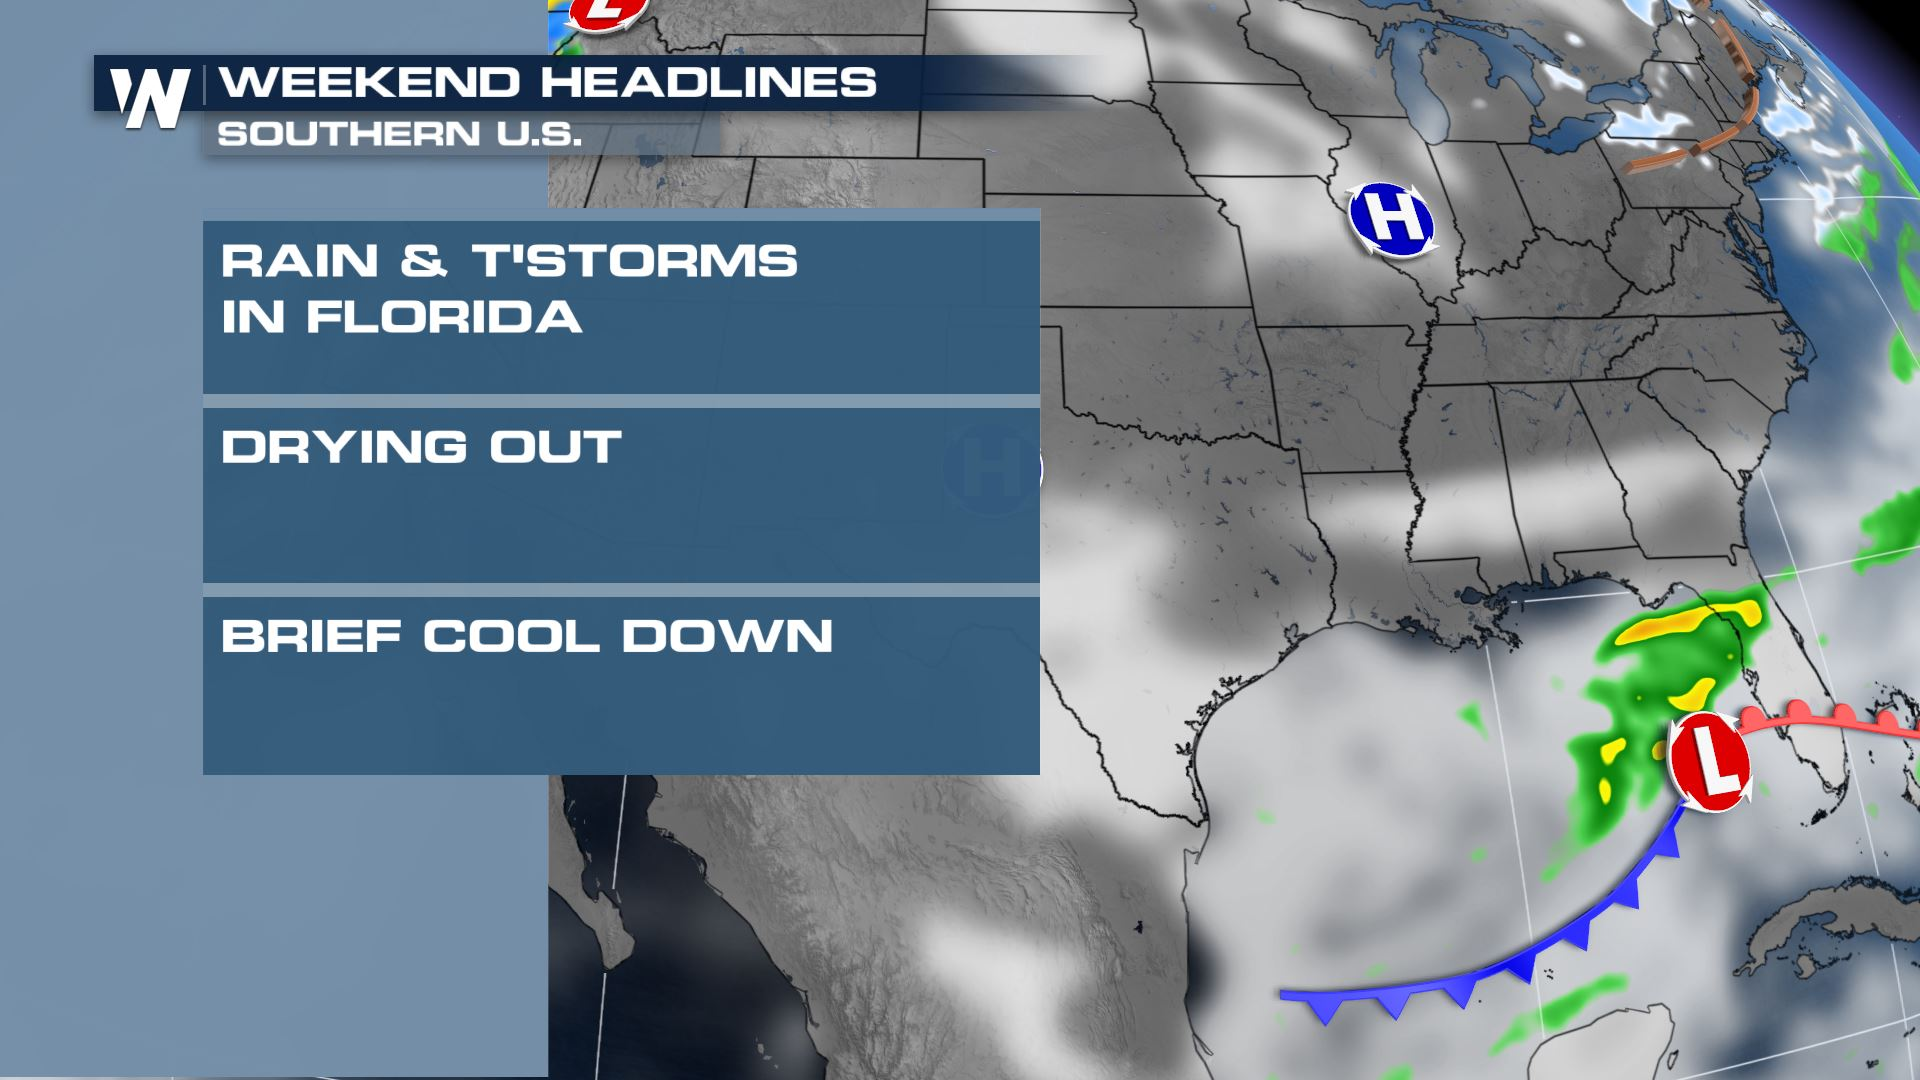 Weekend Weather Headlines: What You Can Expect